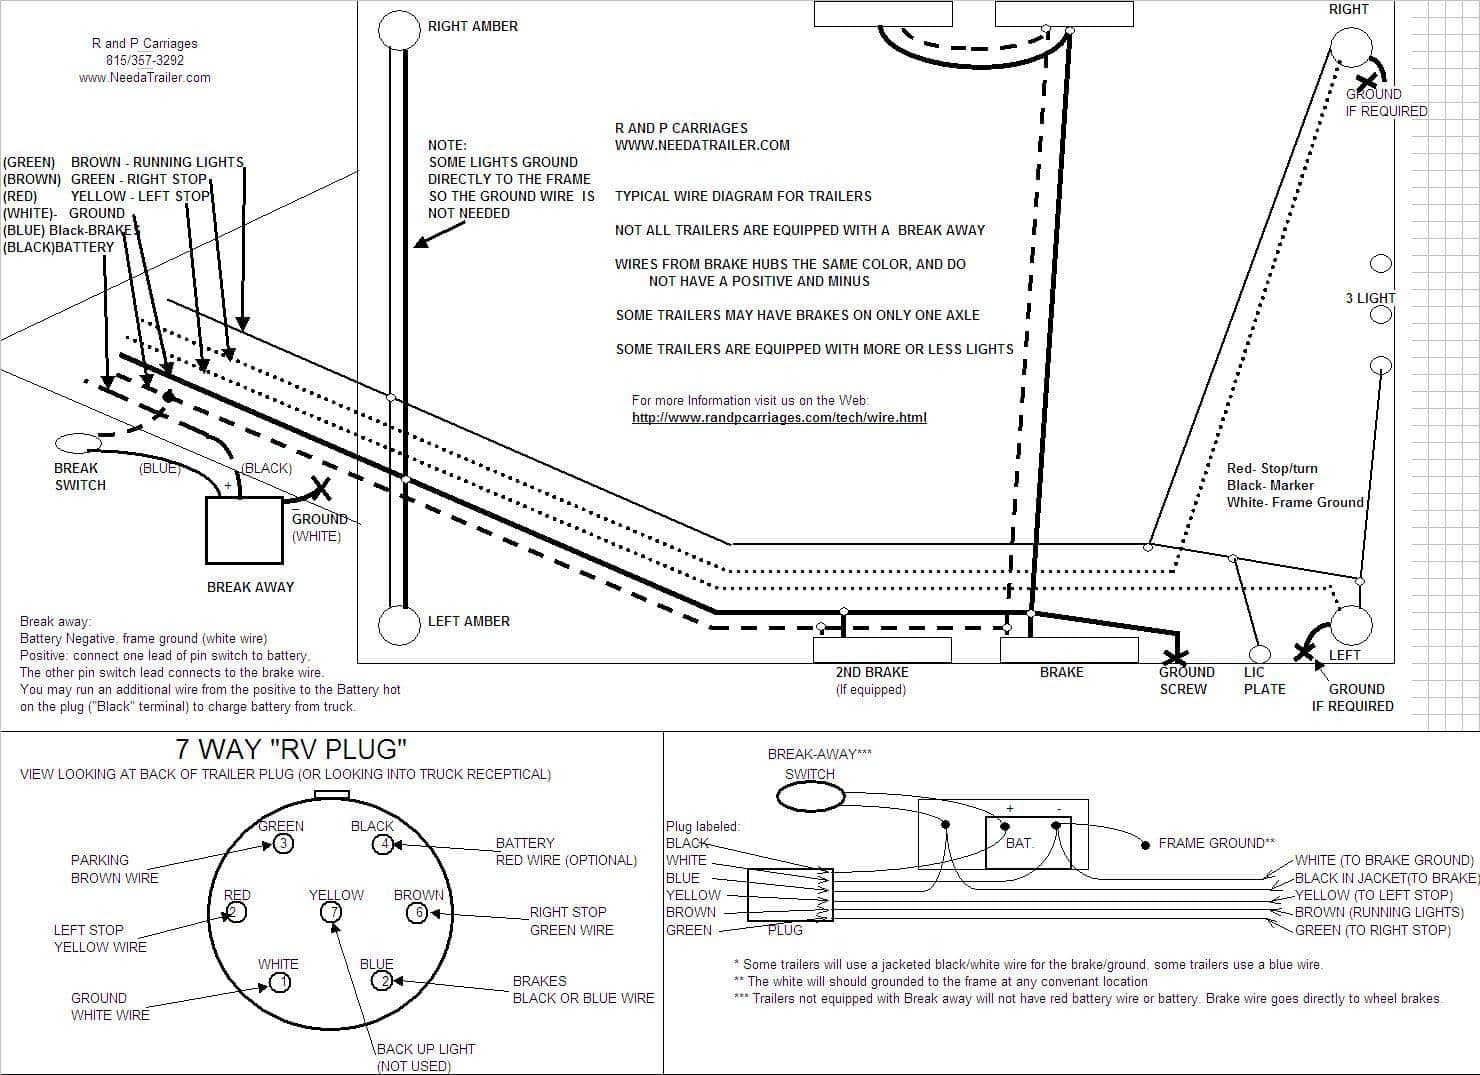 Horse Trailer Brake Wiring - Electrical Schematic Wiring Diagram • - Wiring Diagram For Trailer With Electric Brakes